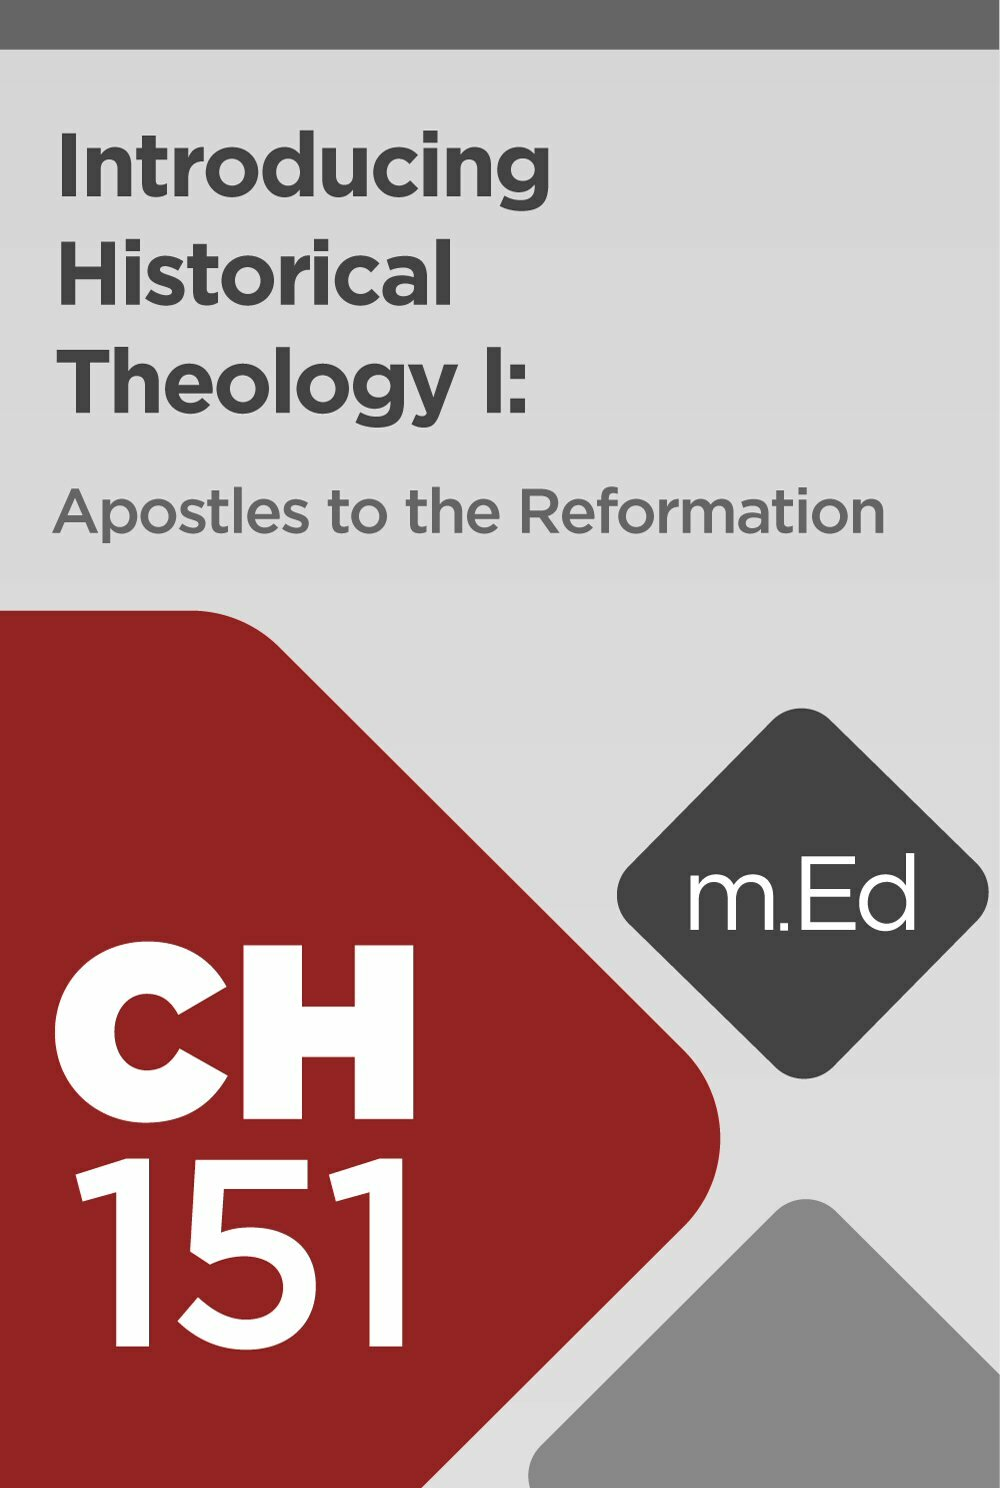 Mobile Ed: CH151 Introducing Historical Theology I: Apostles to the Reformation (6 hour course)